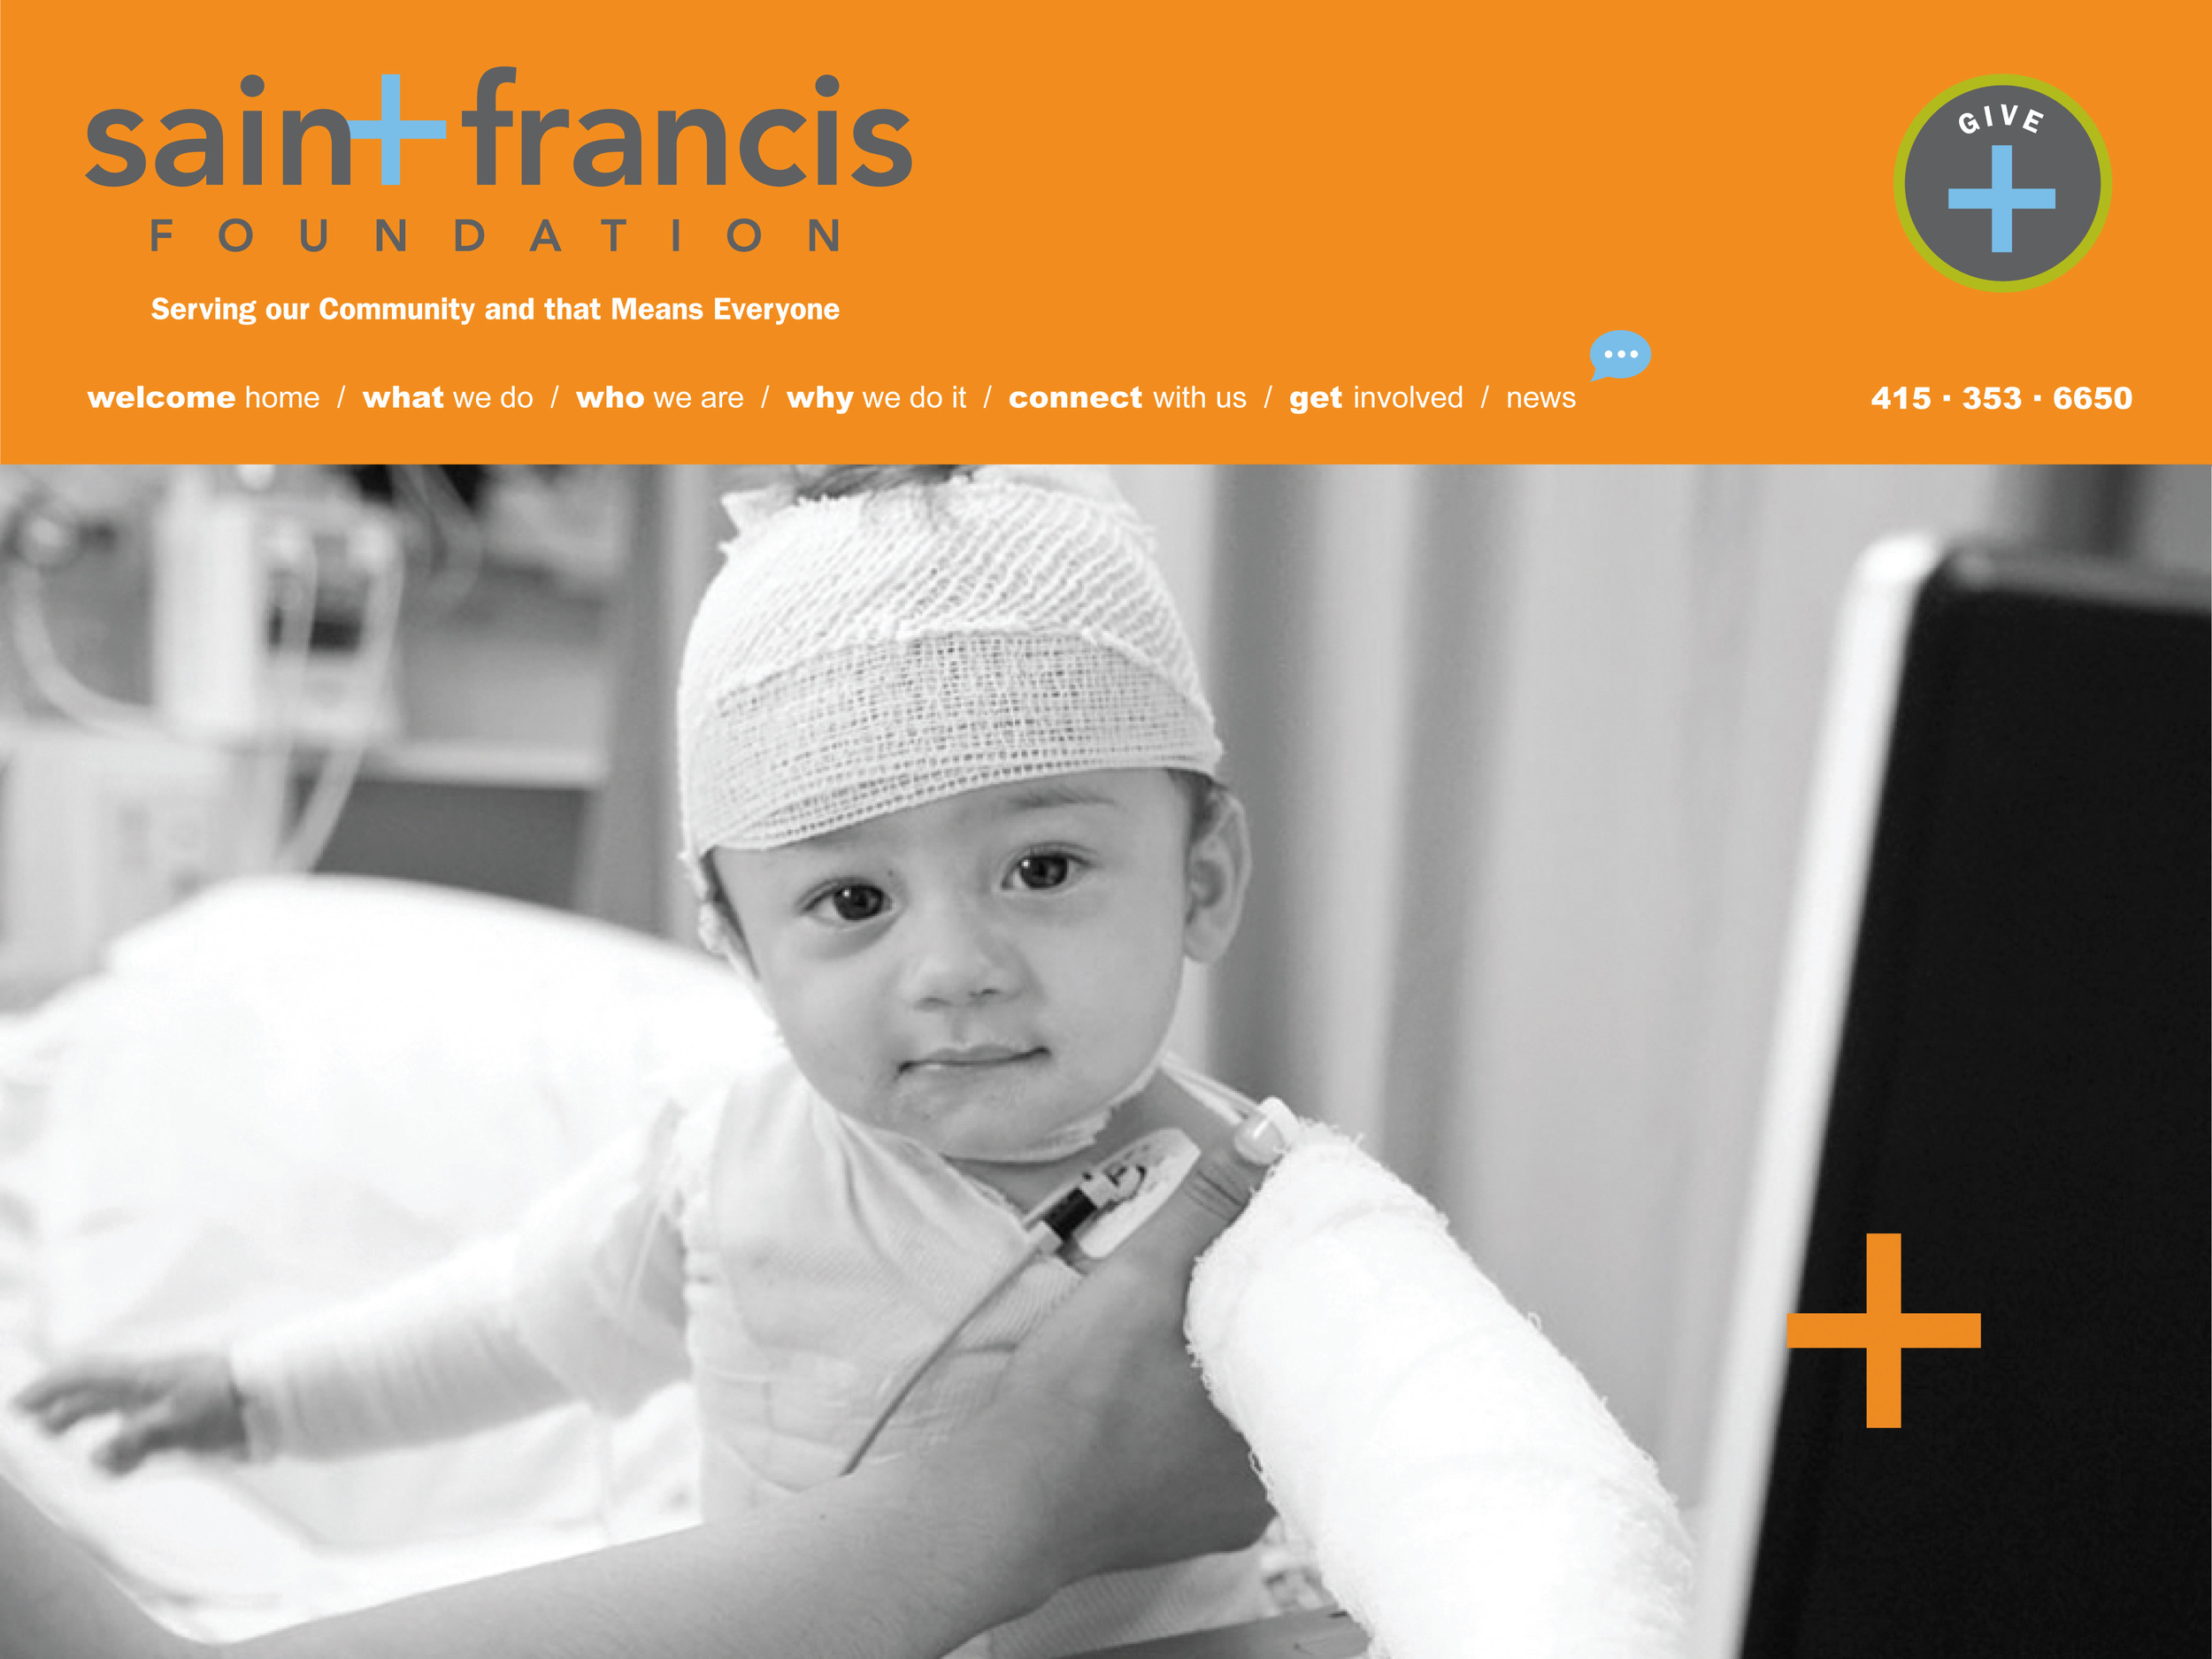 saint francis foundation